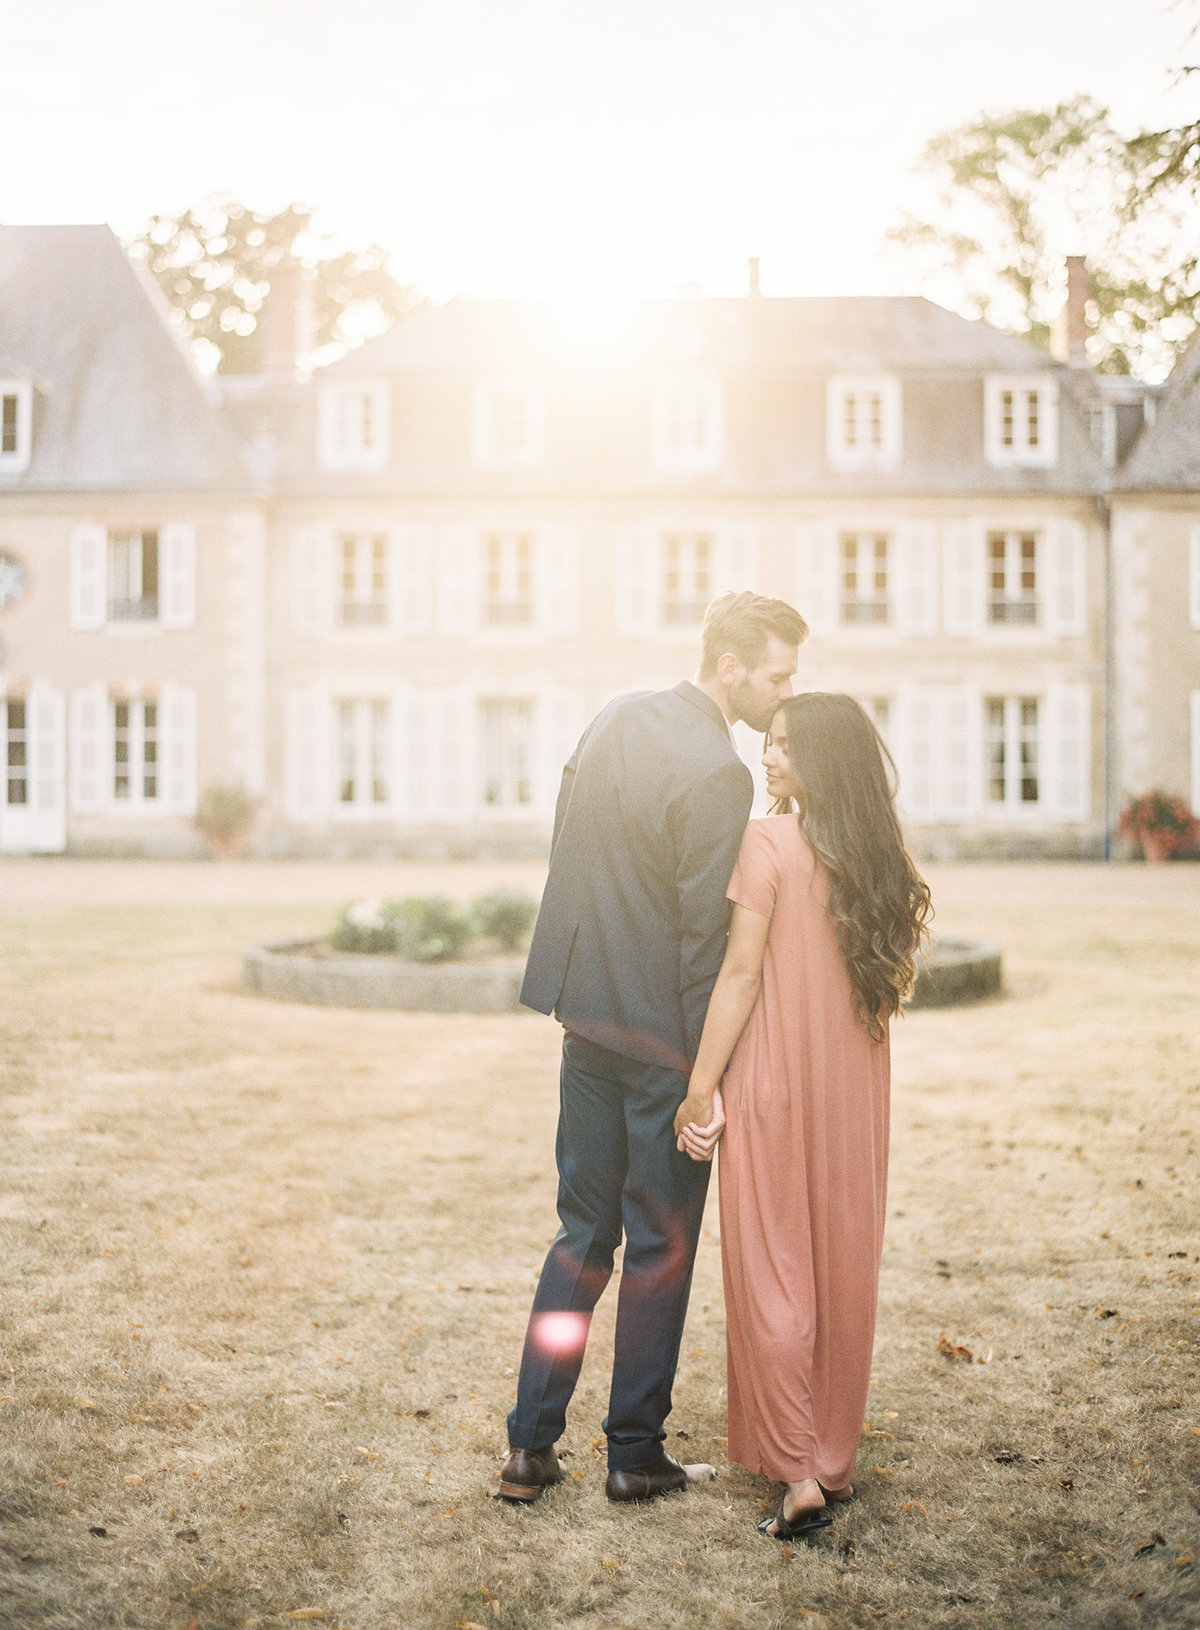 french_engagement_024